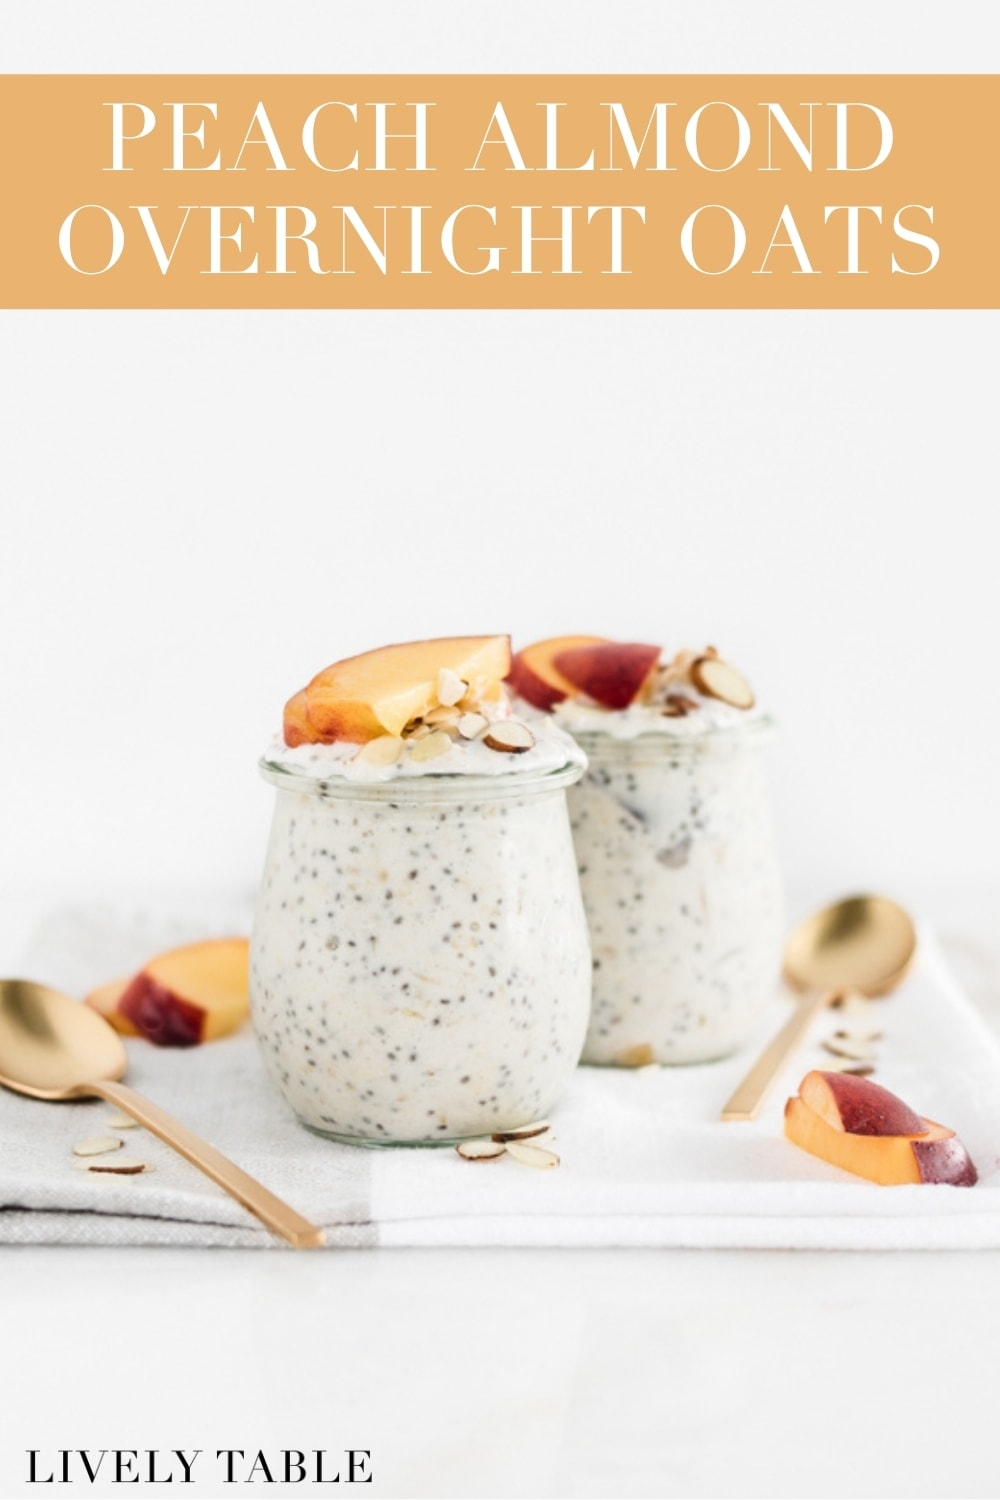 These almond peach overnight oats are a healthy and delicious make ahead breakfast that celebrates the best of summer peaches! (#glutenfree, #vegetarian) #overnightoats #oatmeal #breakfast #makeahead #mealprep #recipes #healthy #peach